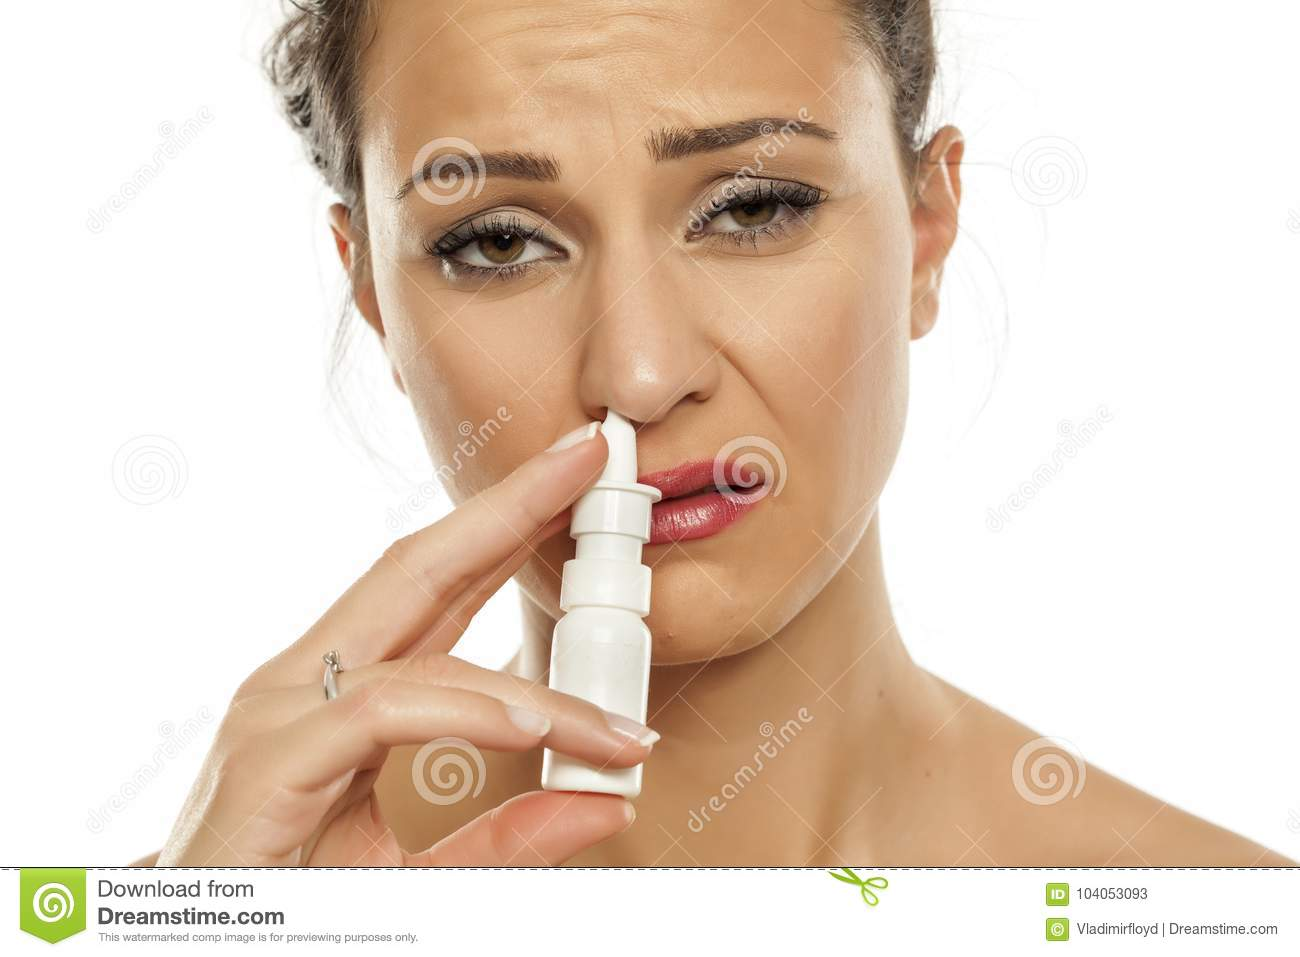 What are needed drops in the nose with an antibiotic for sinus 64